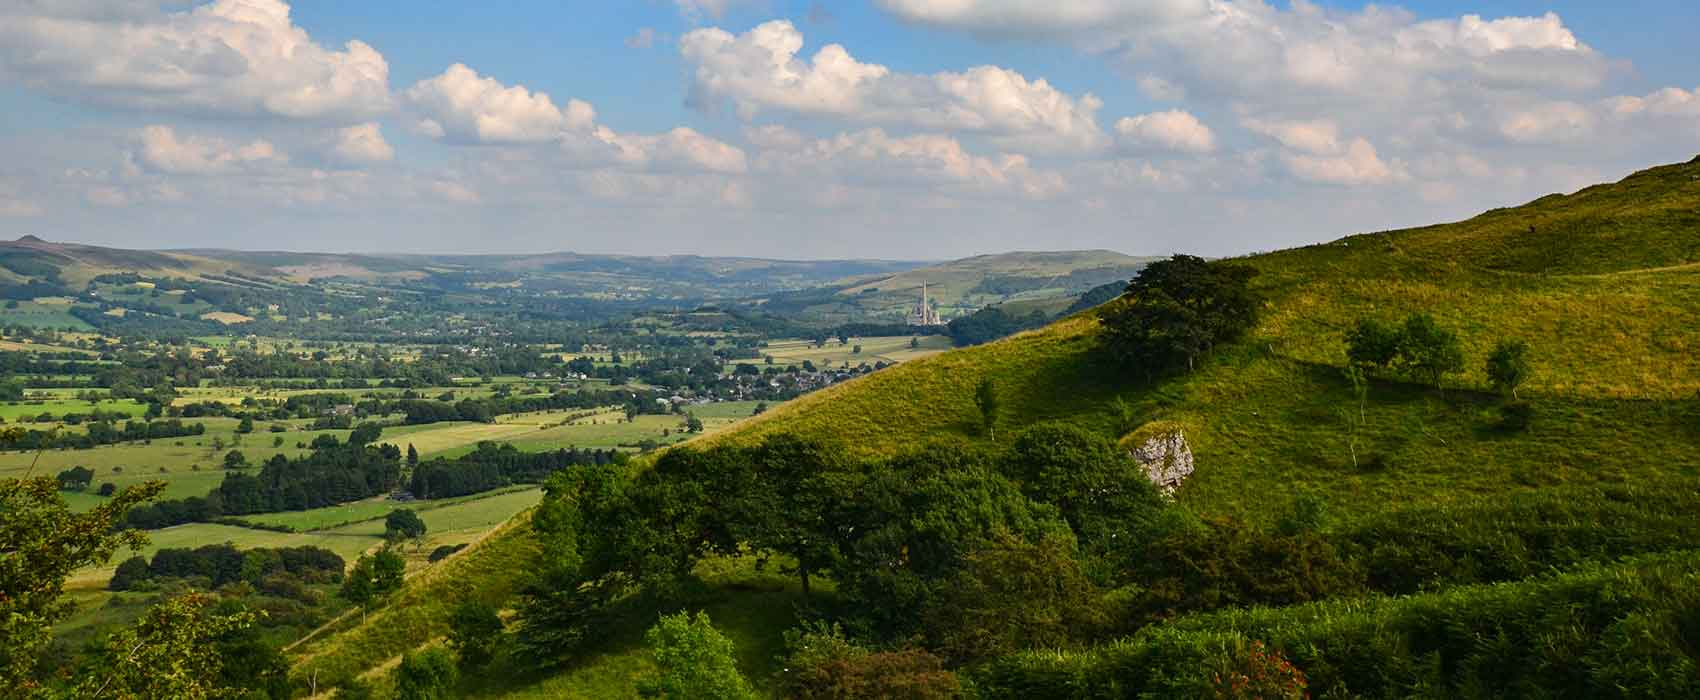 View across the green fields of Hope Valley in Peak District